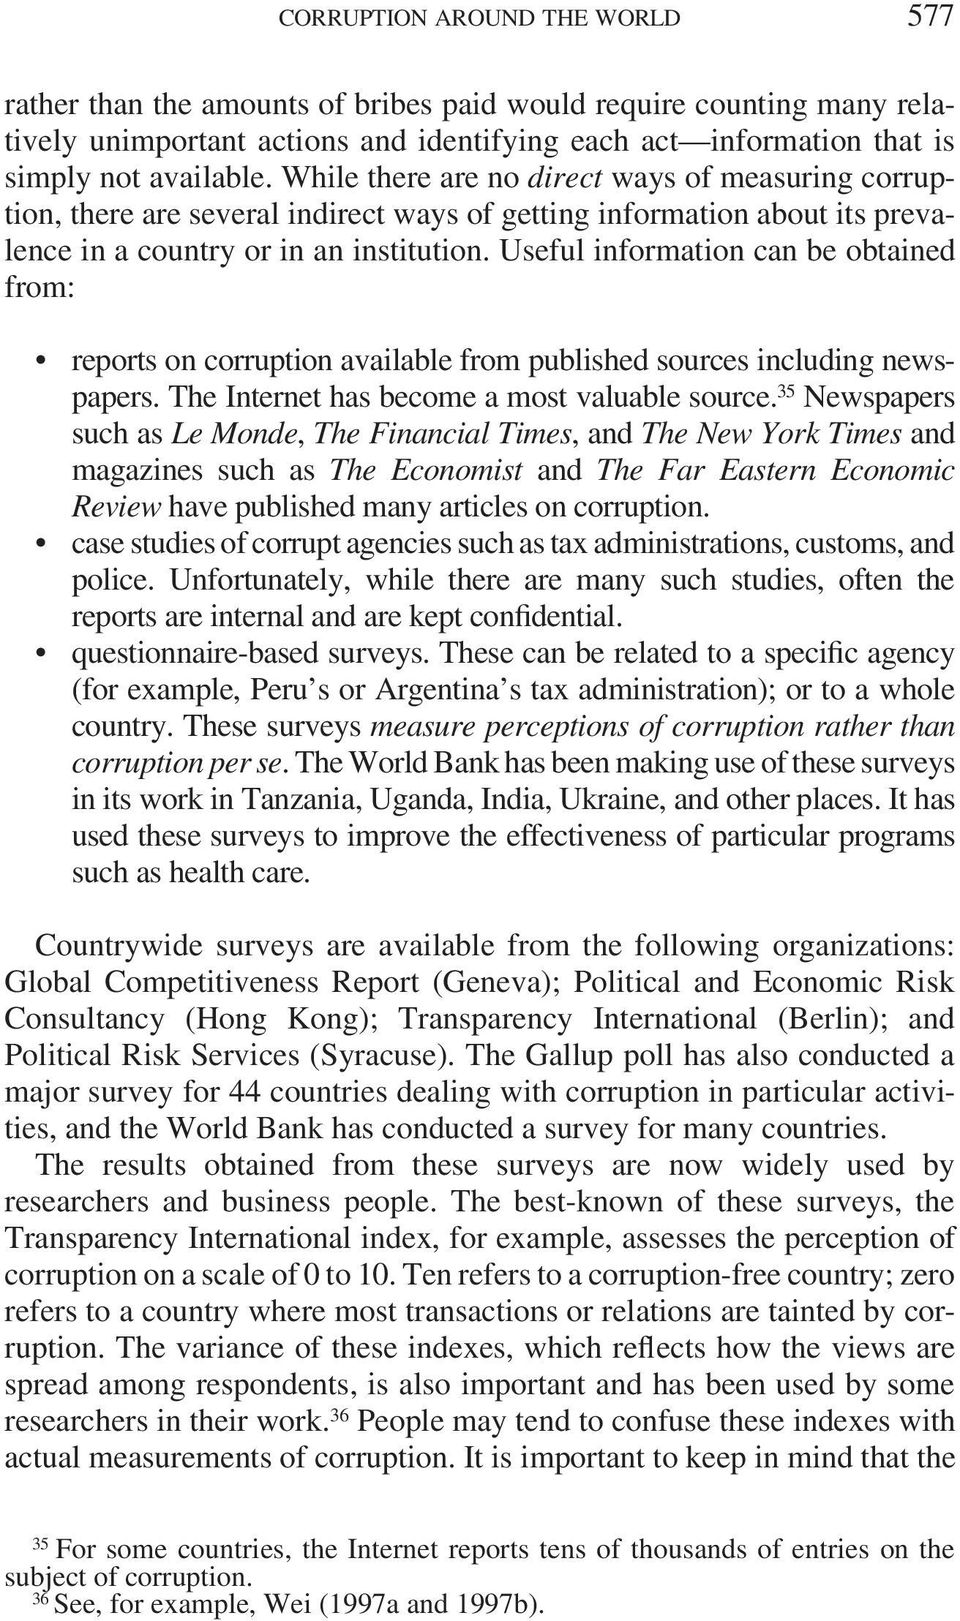 Useful information can be obtained from: reports on corruption available from published sources including newspapers. The Internet has become a most valuable source.